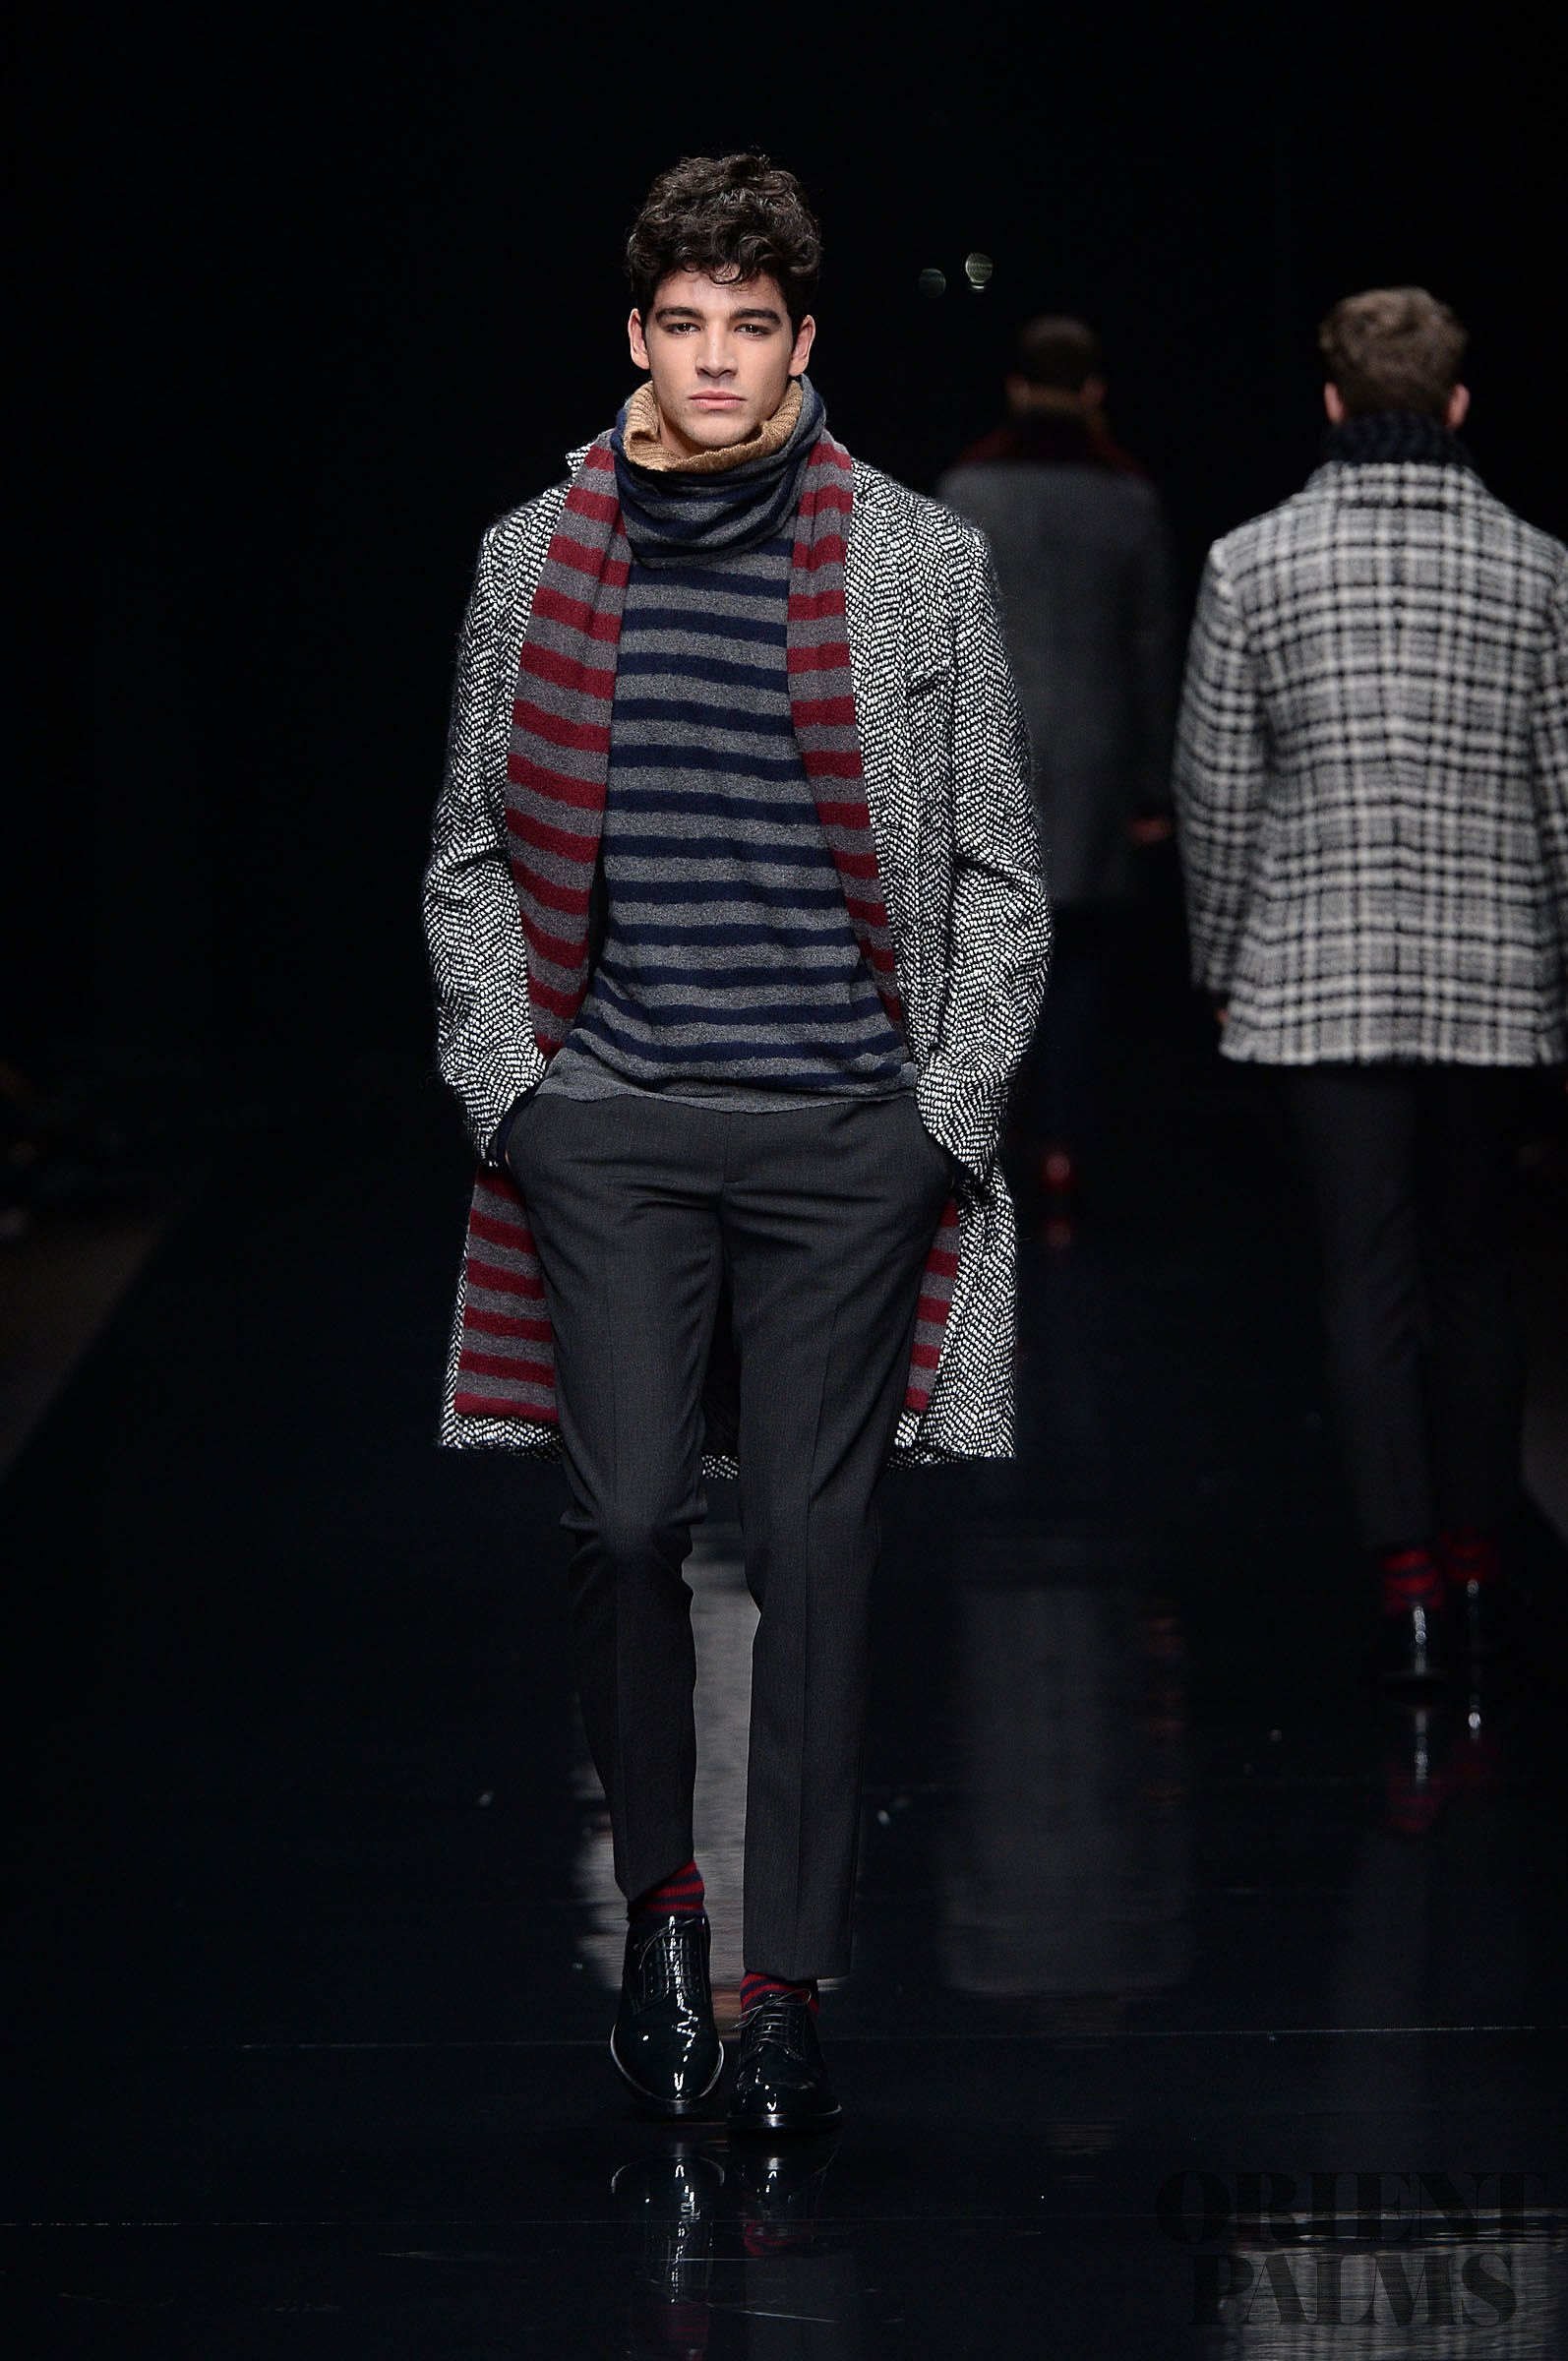 Ermanno Scervino Fall-winter 2015-2016 - Menswear 0b0e9ca80ab6